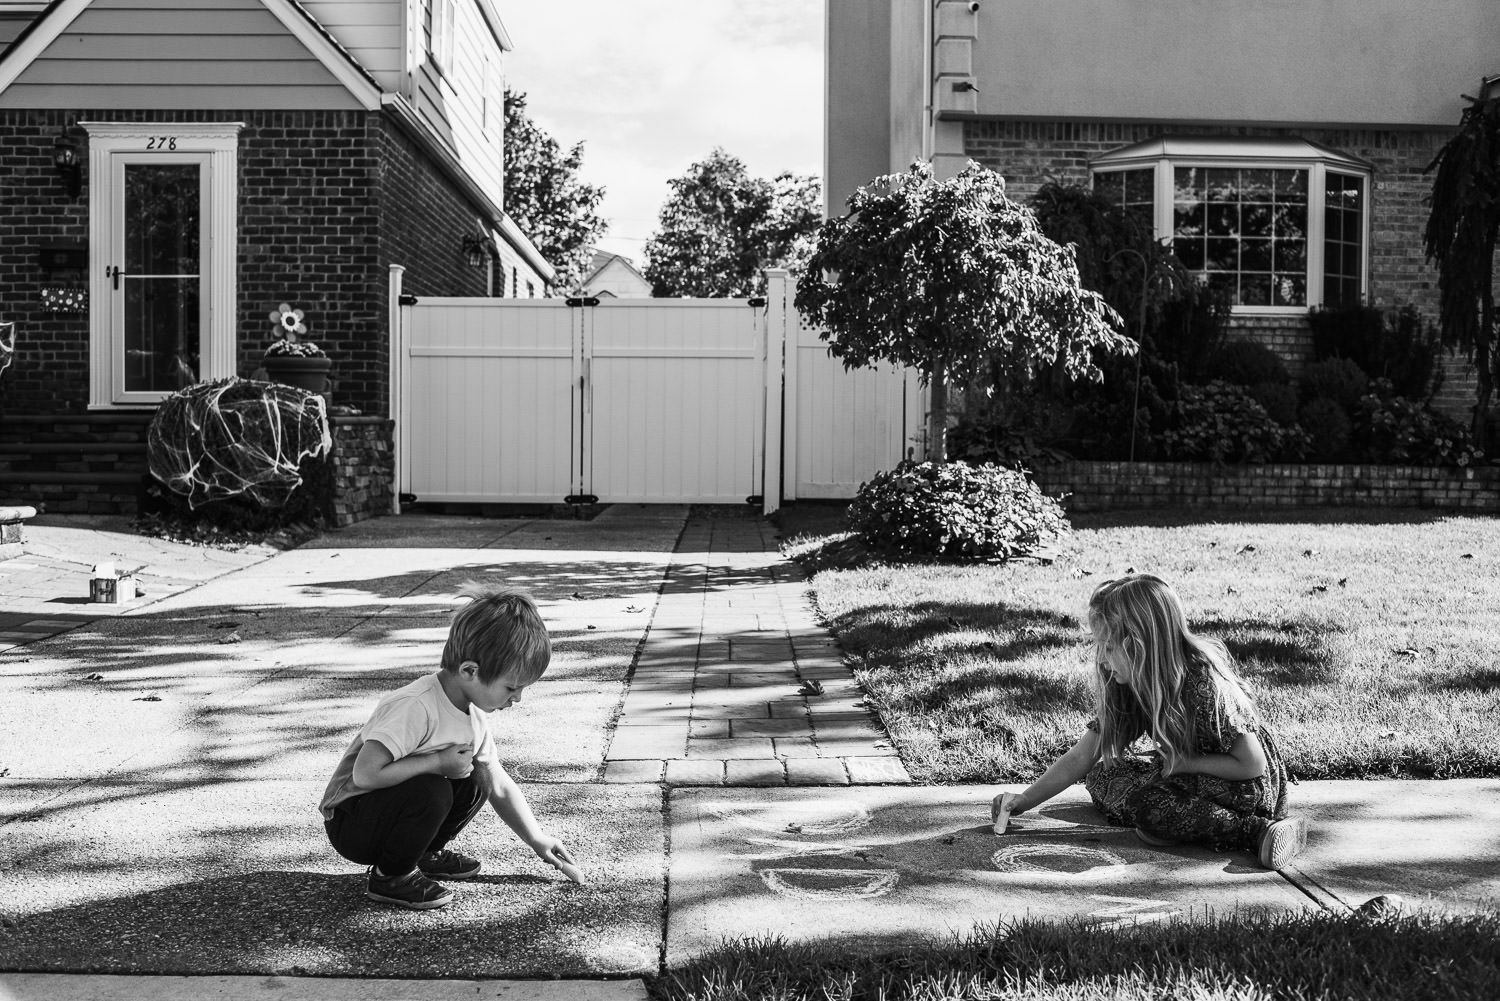 A boy and girl draw with chalk in their driveway.